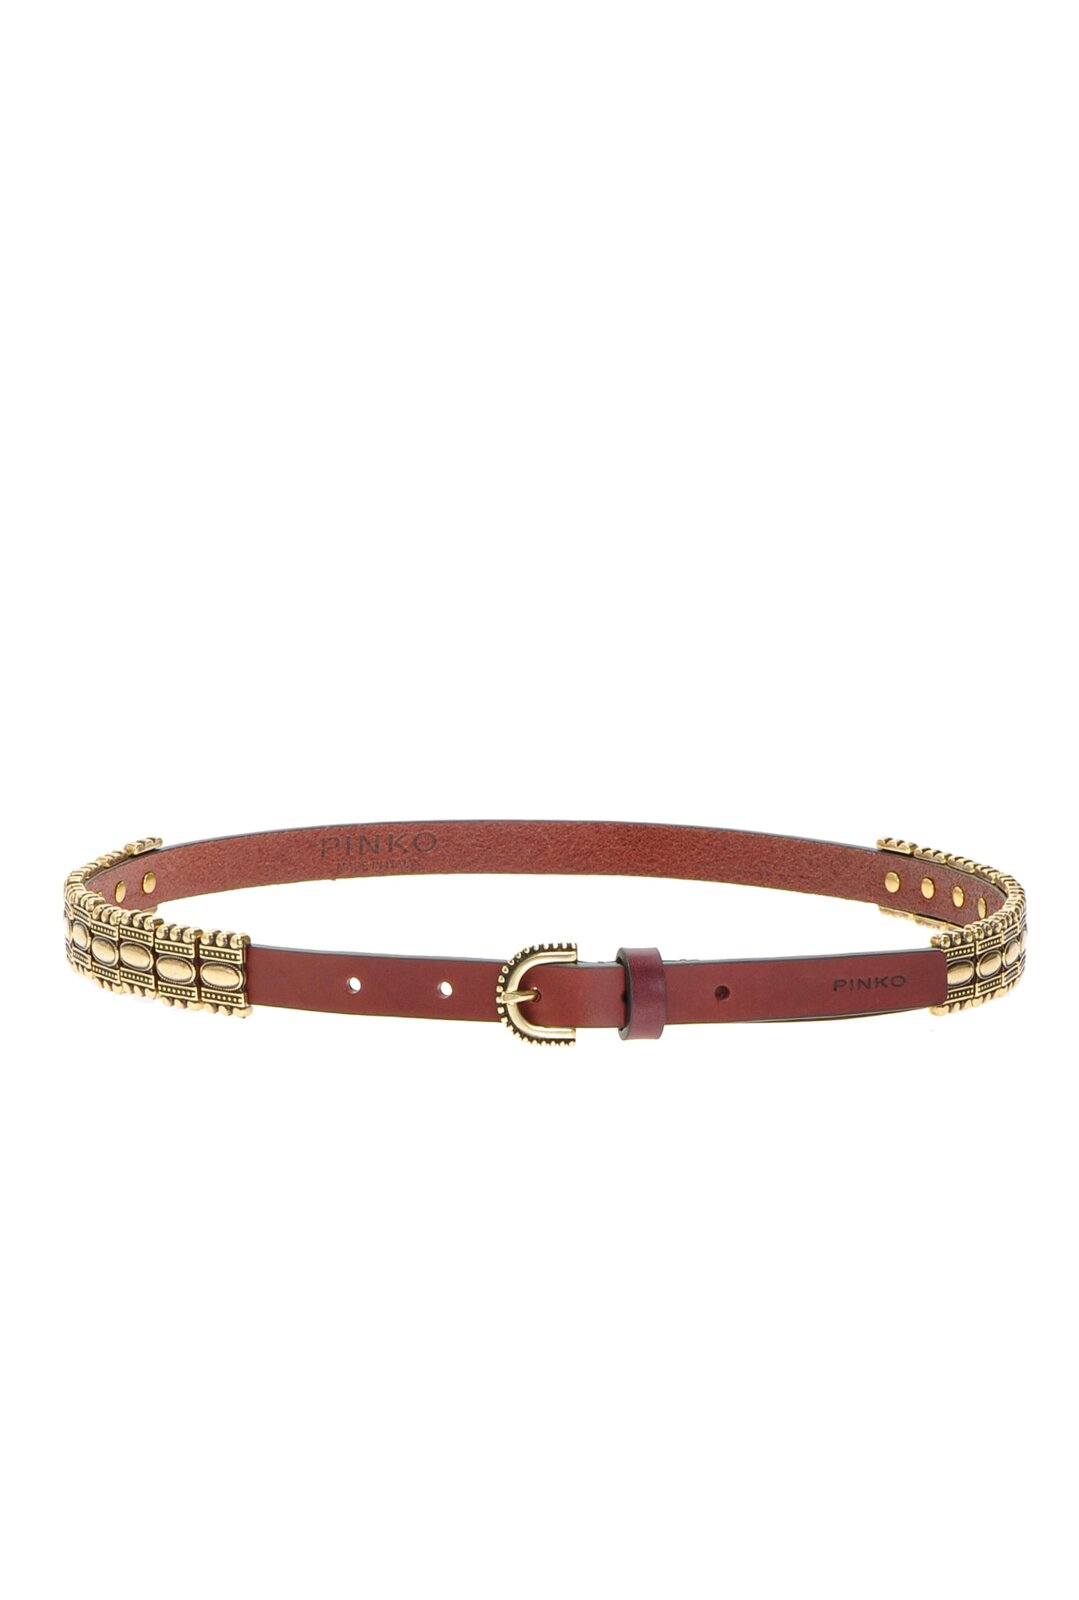 Low Belt With Metal Plates - Pinko